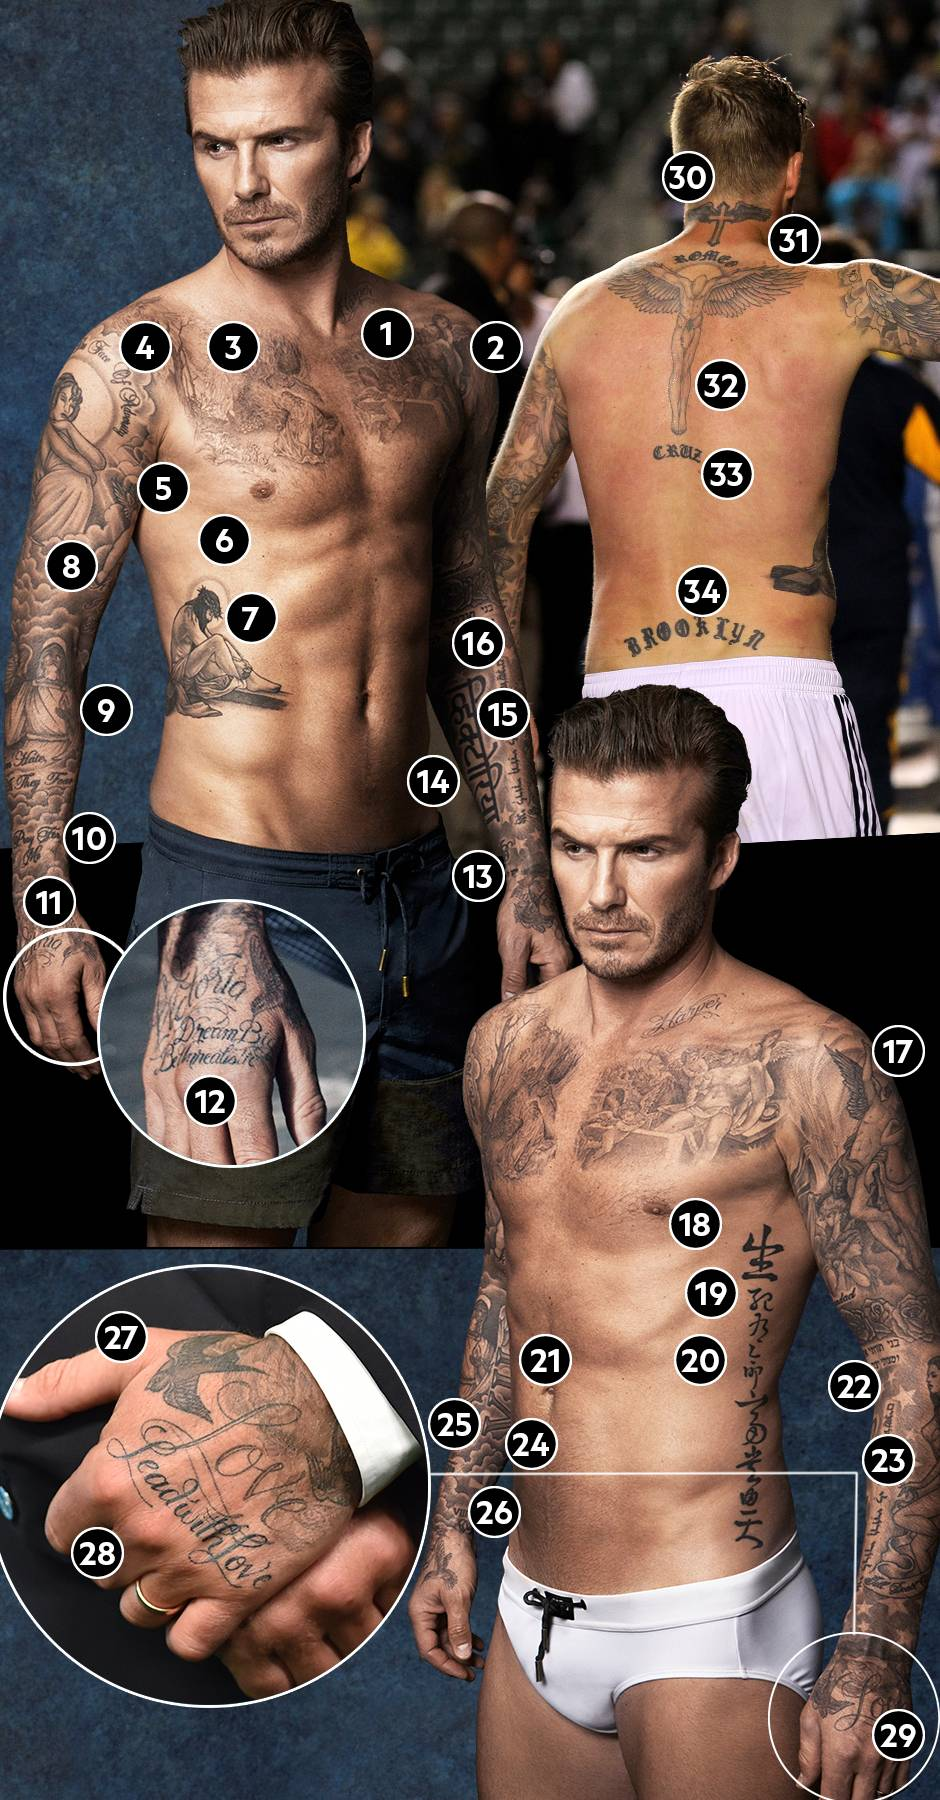 david beckham das bedeuten seine zahlreichen tattoos. Black Bedroom Furniture Sets. Home Design Ideas